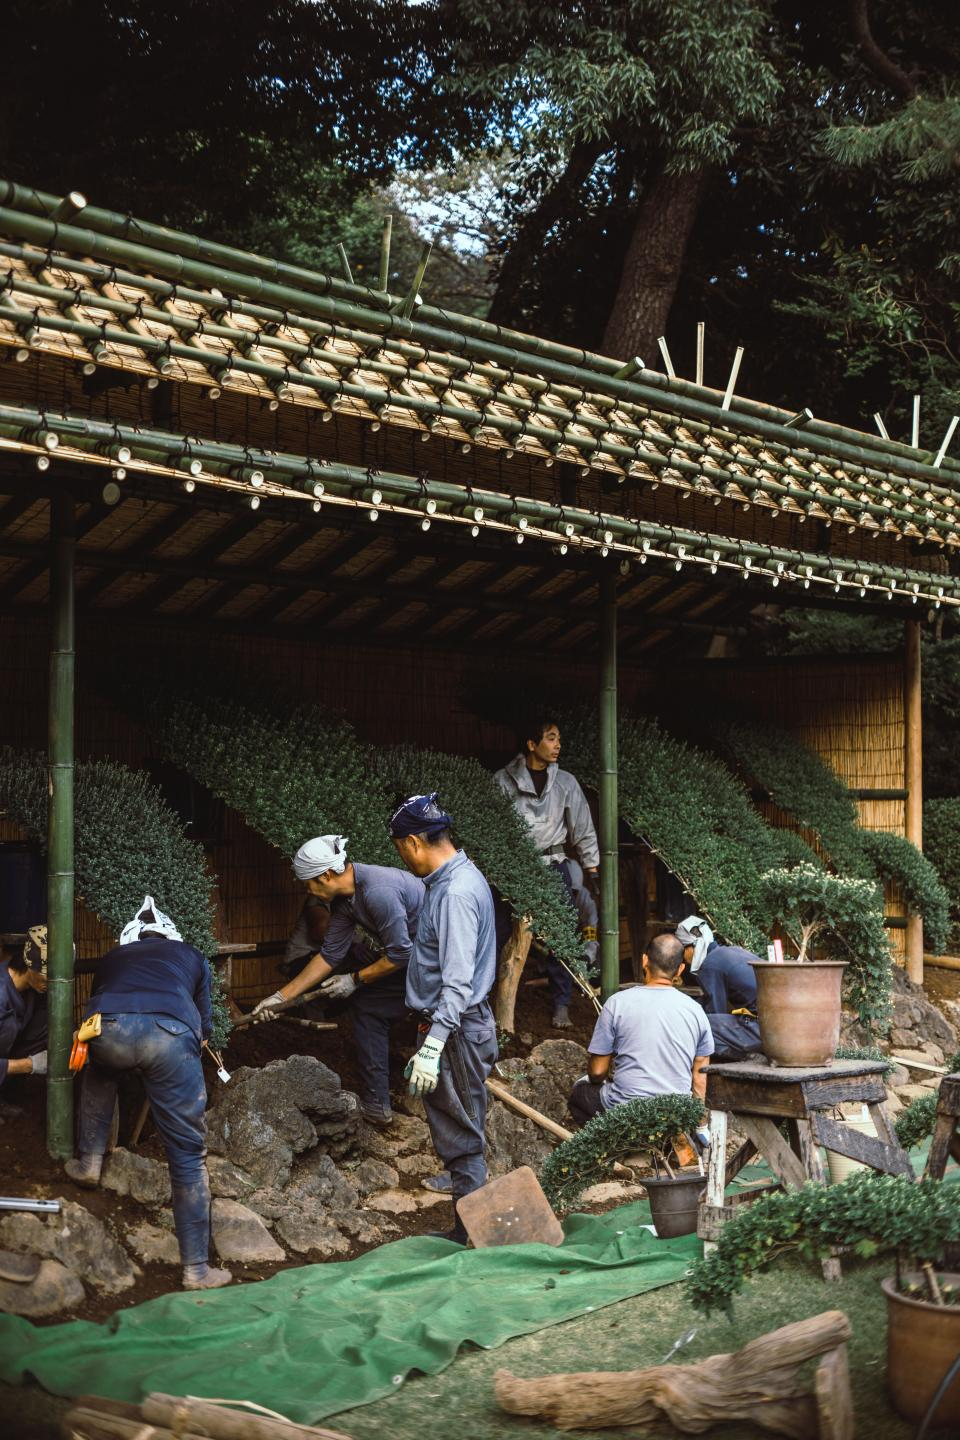 people men working landscape plant pot woods hut